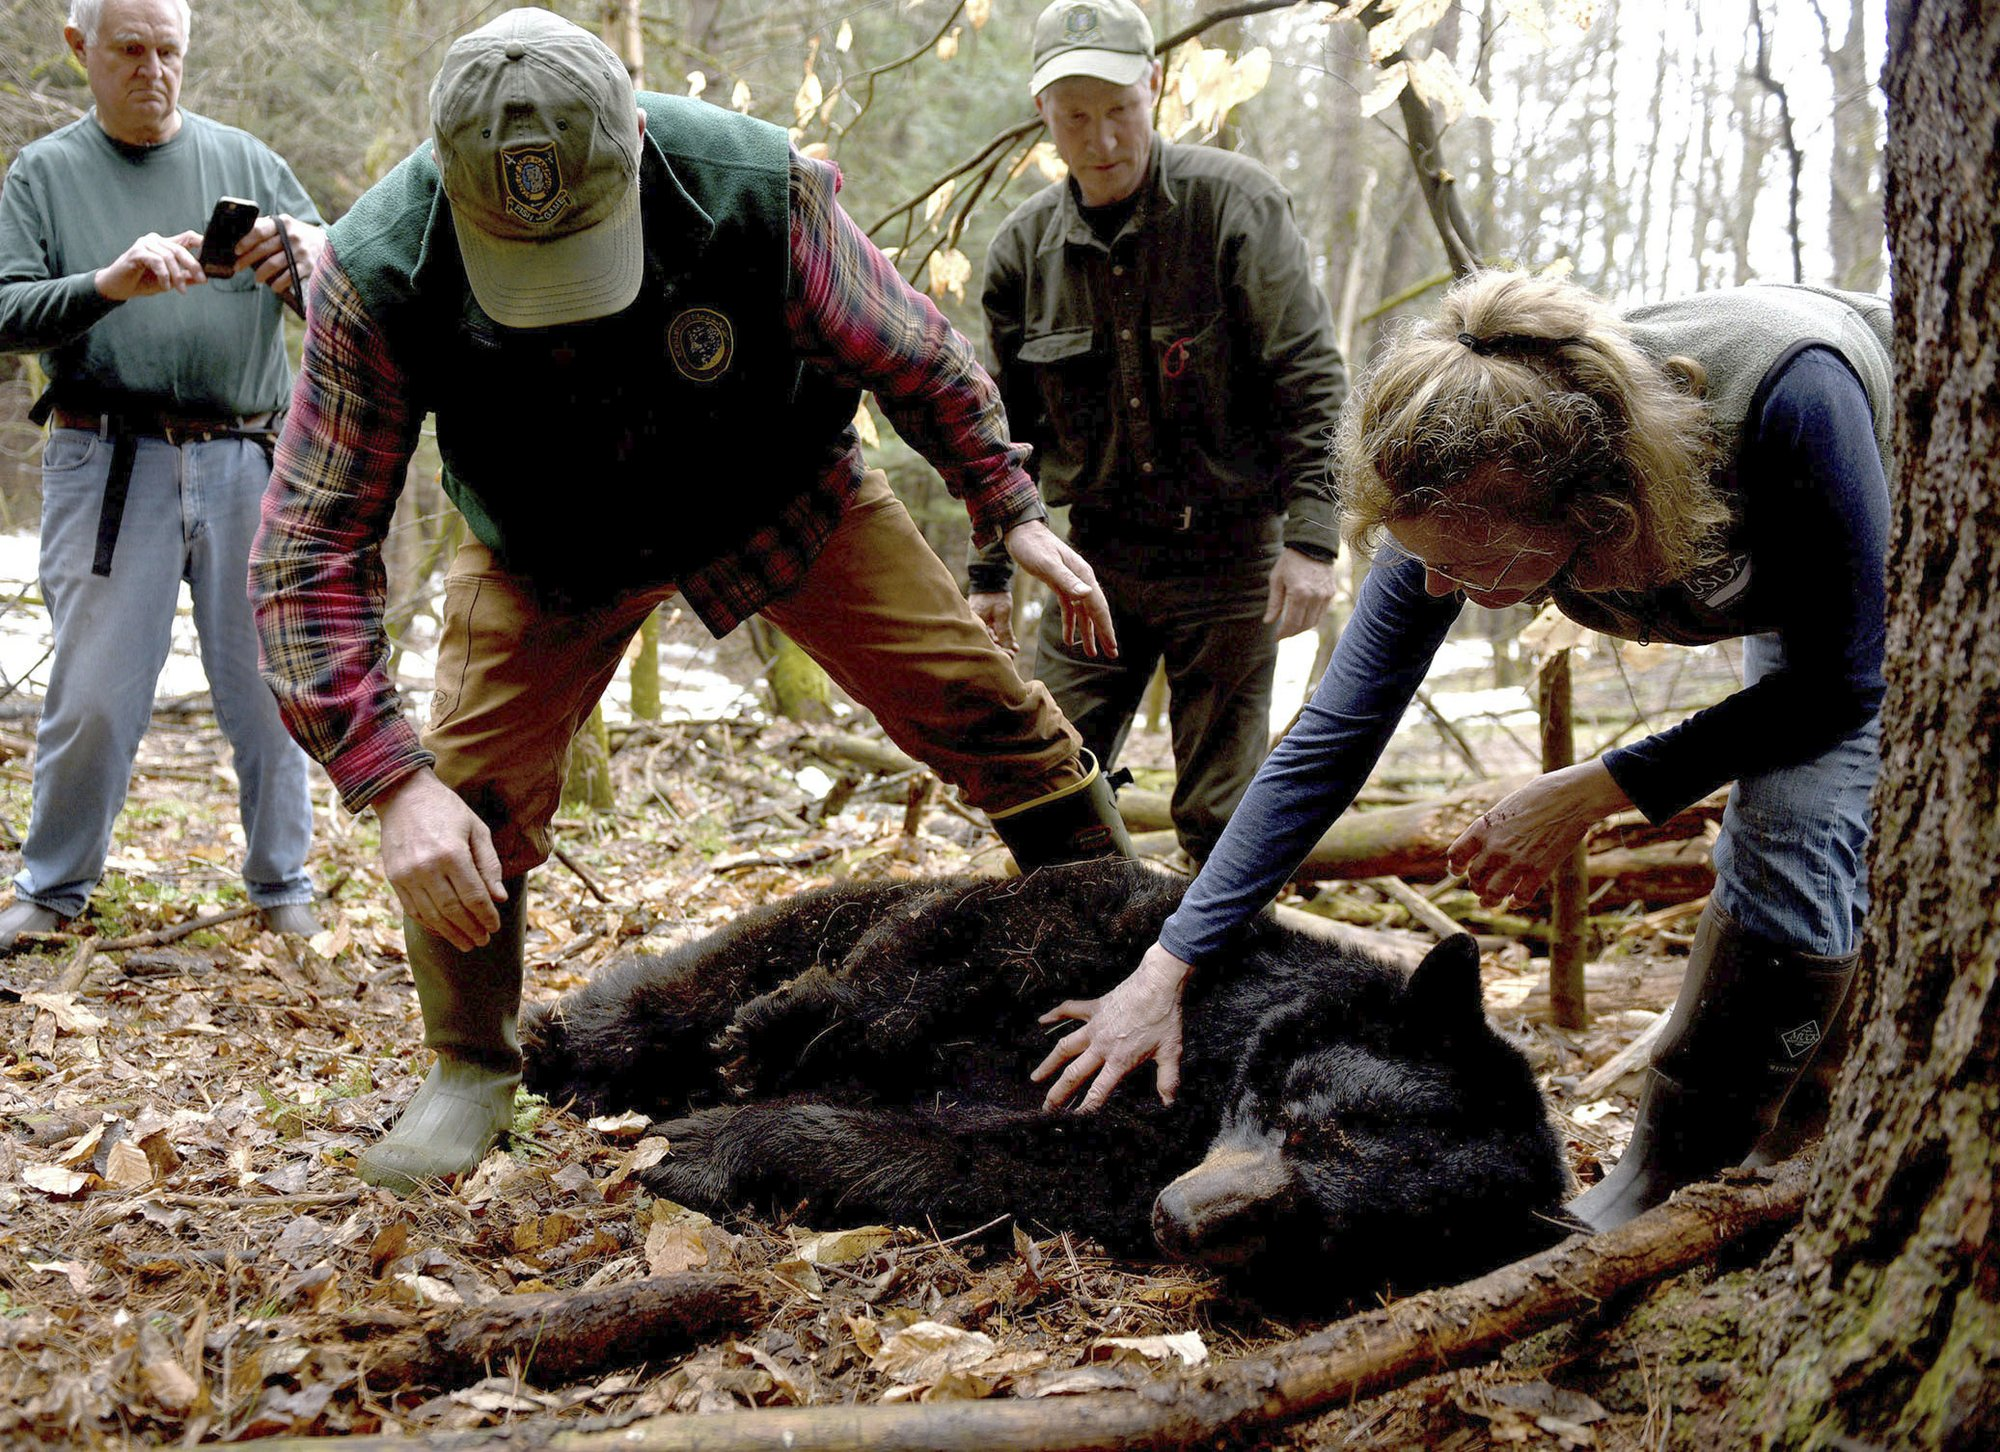 After long journey, bear spared by governor returns home